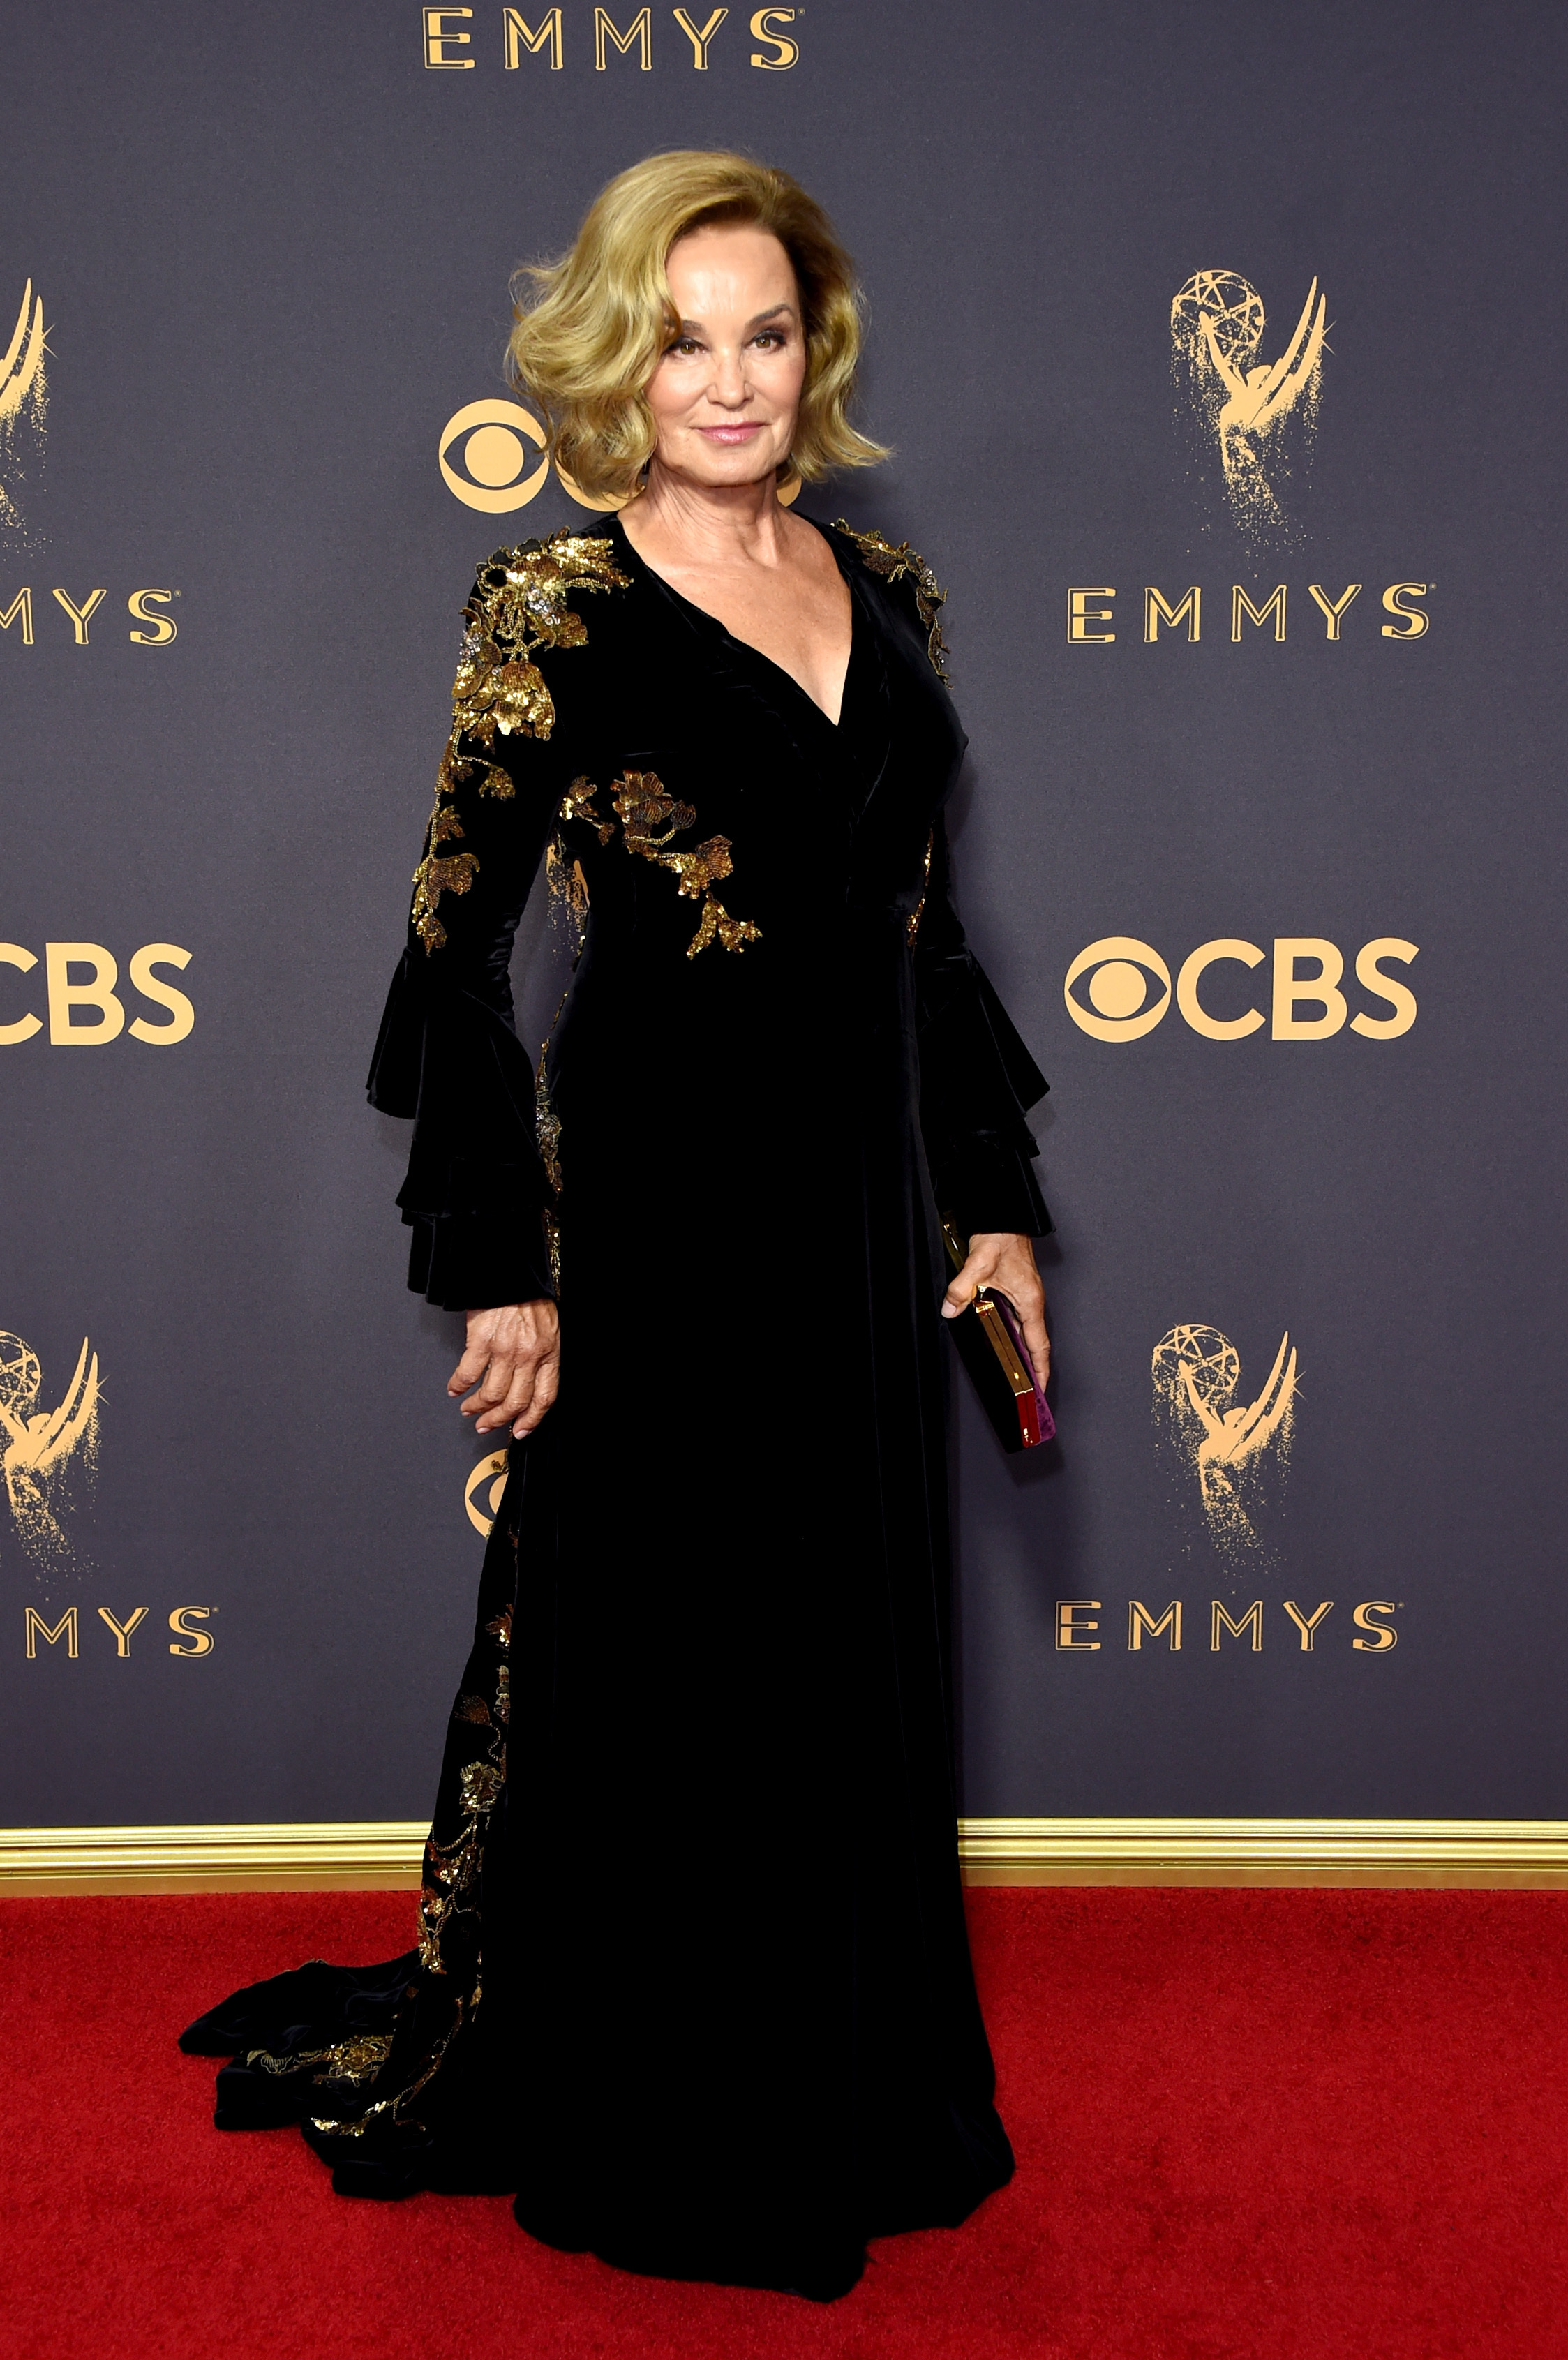 Jessica Lange attends the 69th Annual Primetime Emmy Awards at Microsoft Theater in Los Angeles on Sept. 17, 2017.